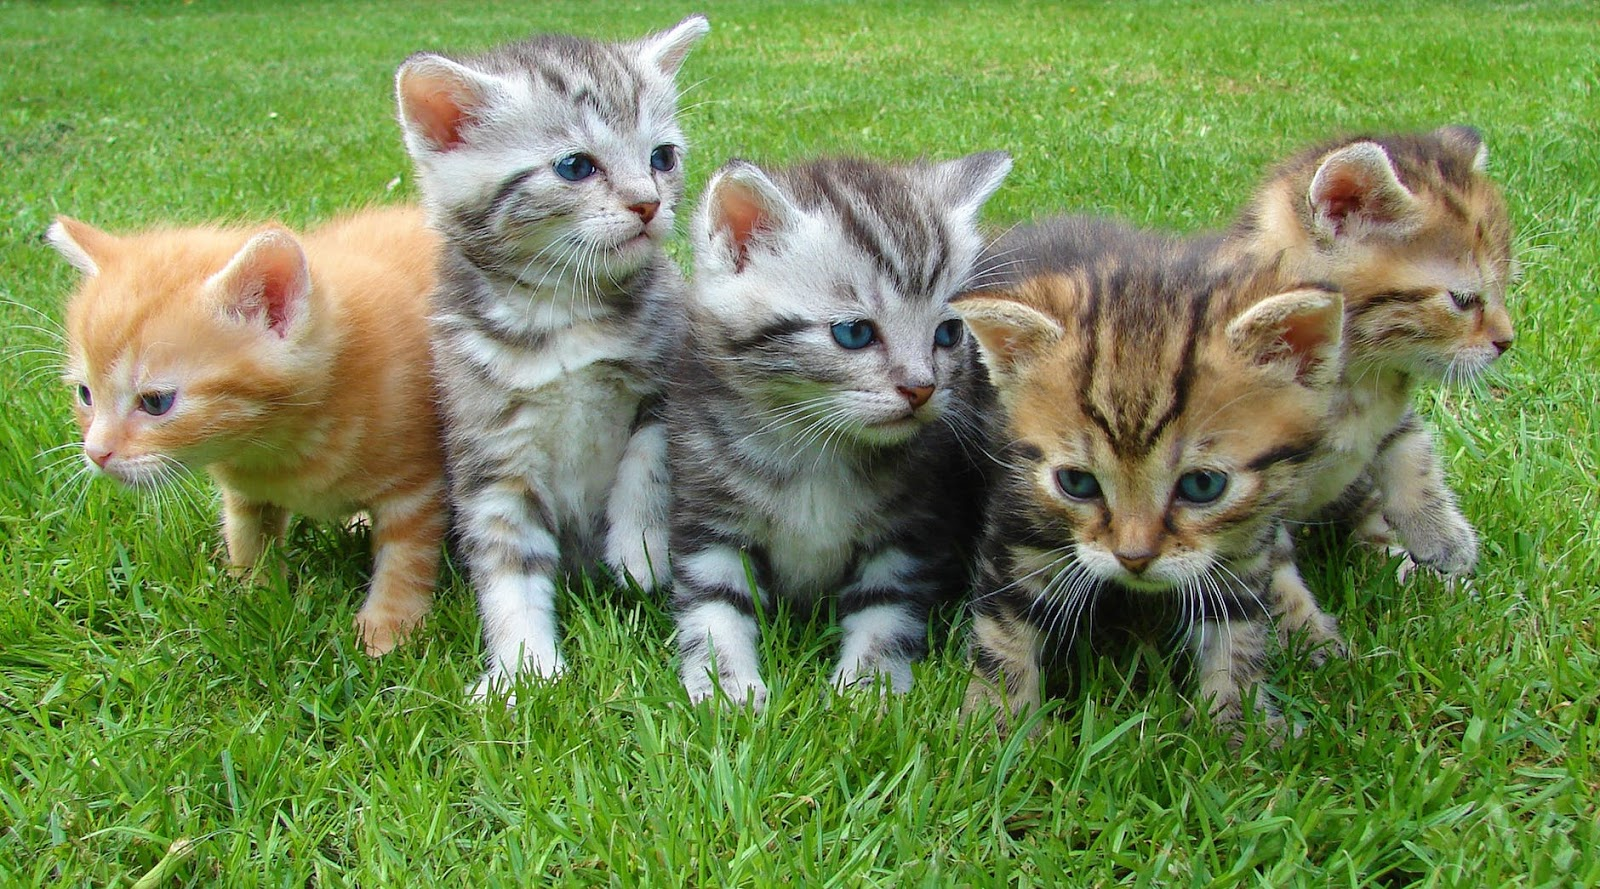 kittens outside in the grass